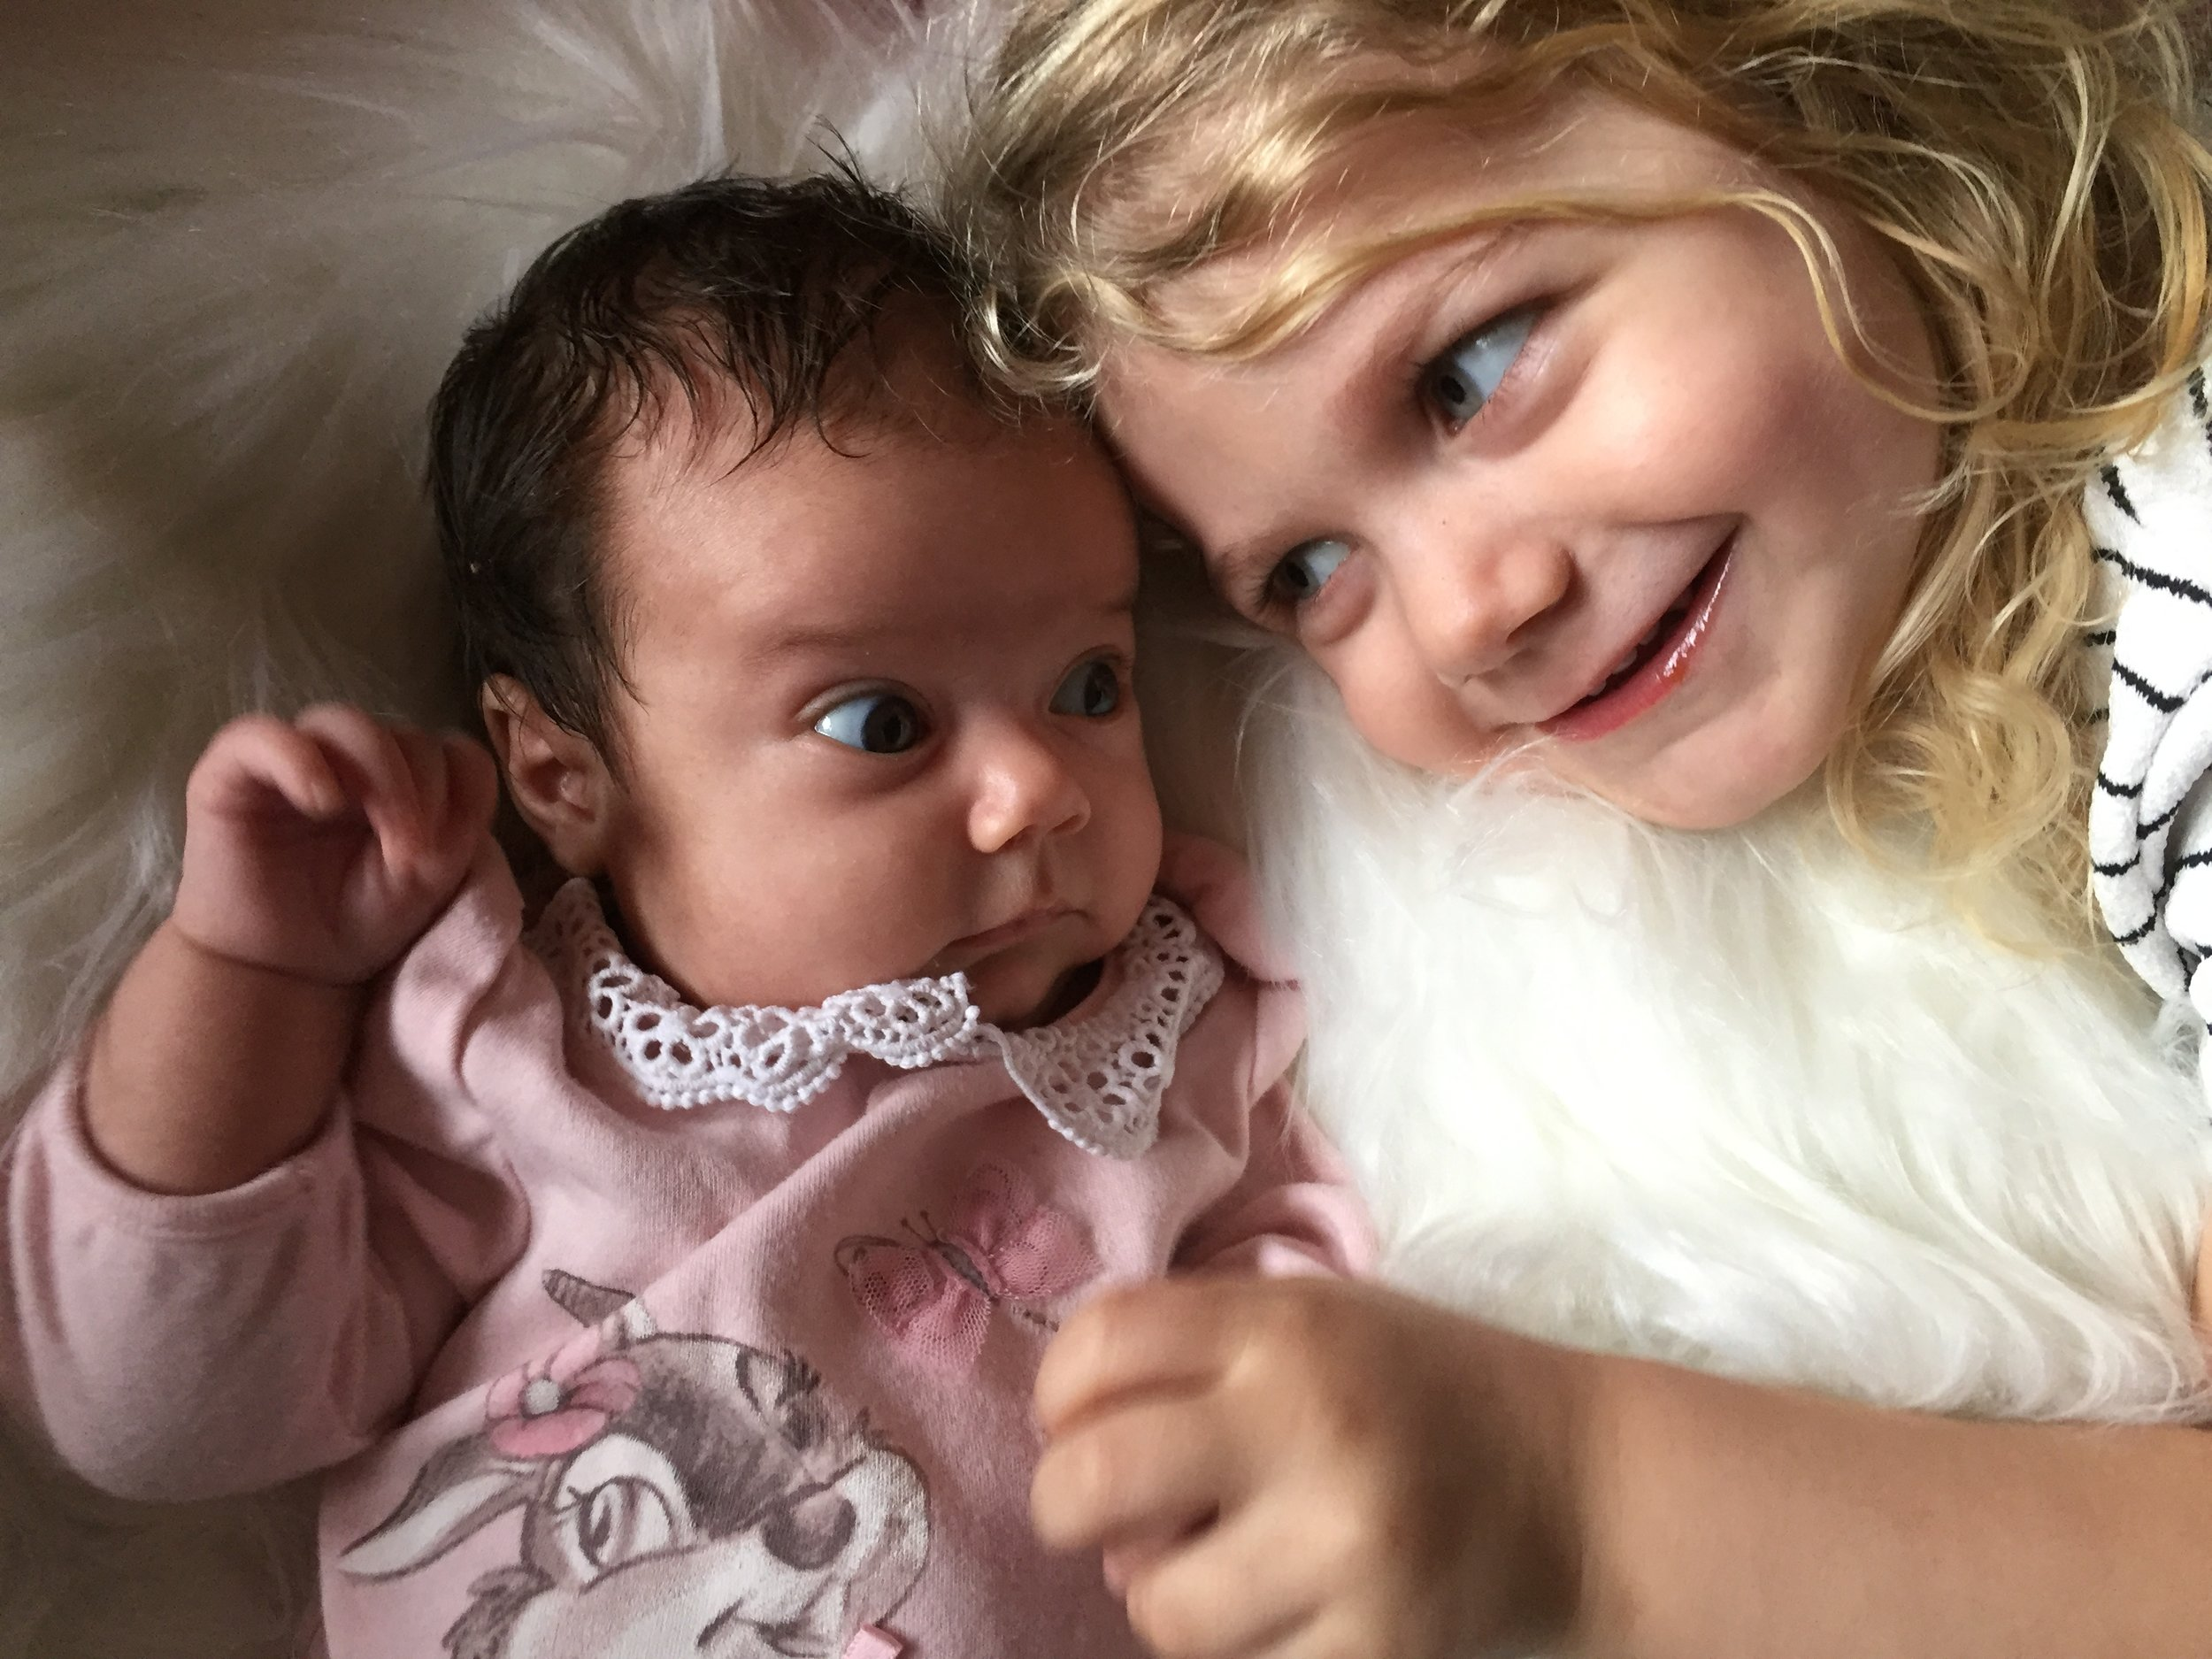 sisterly love and bonds © mebecomingmum